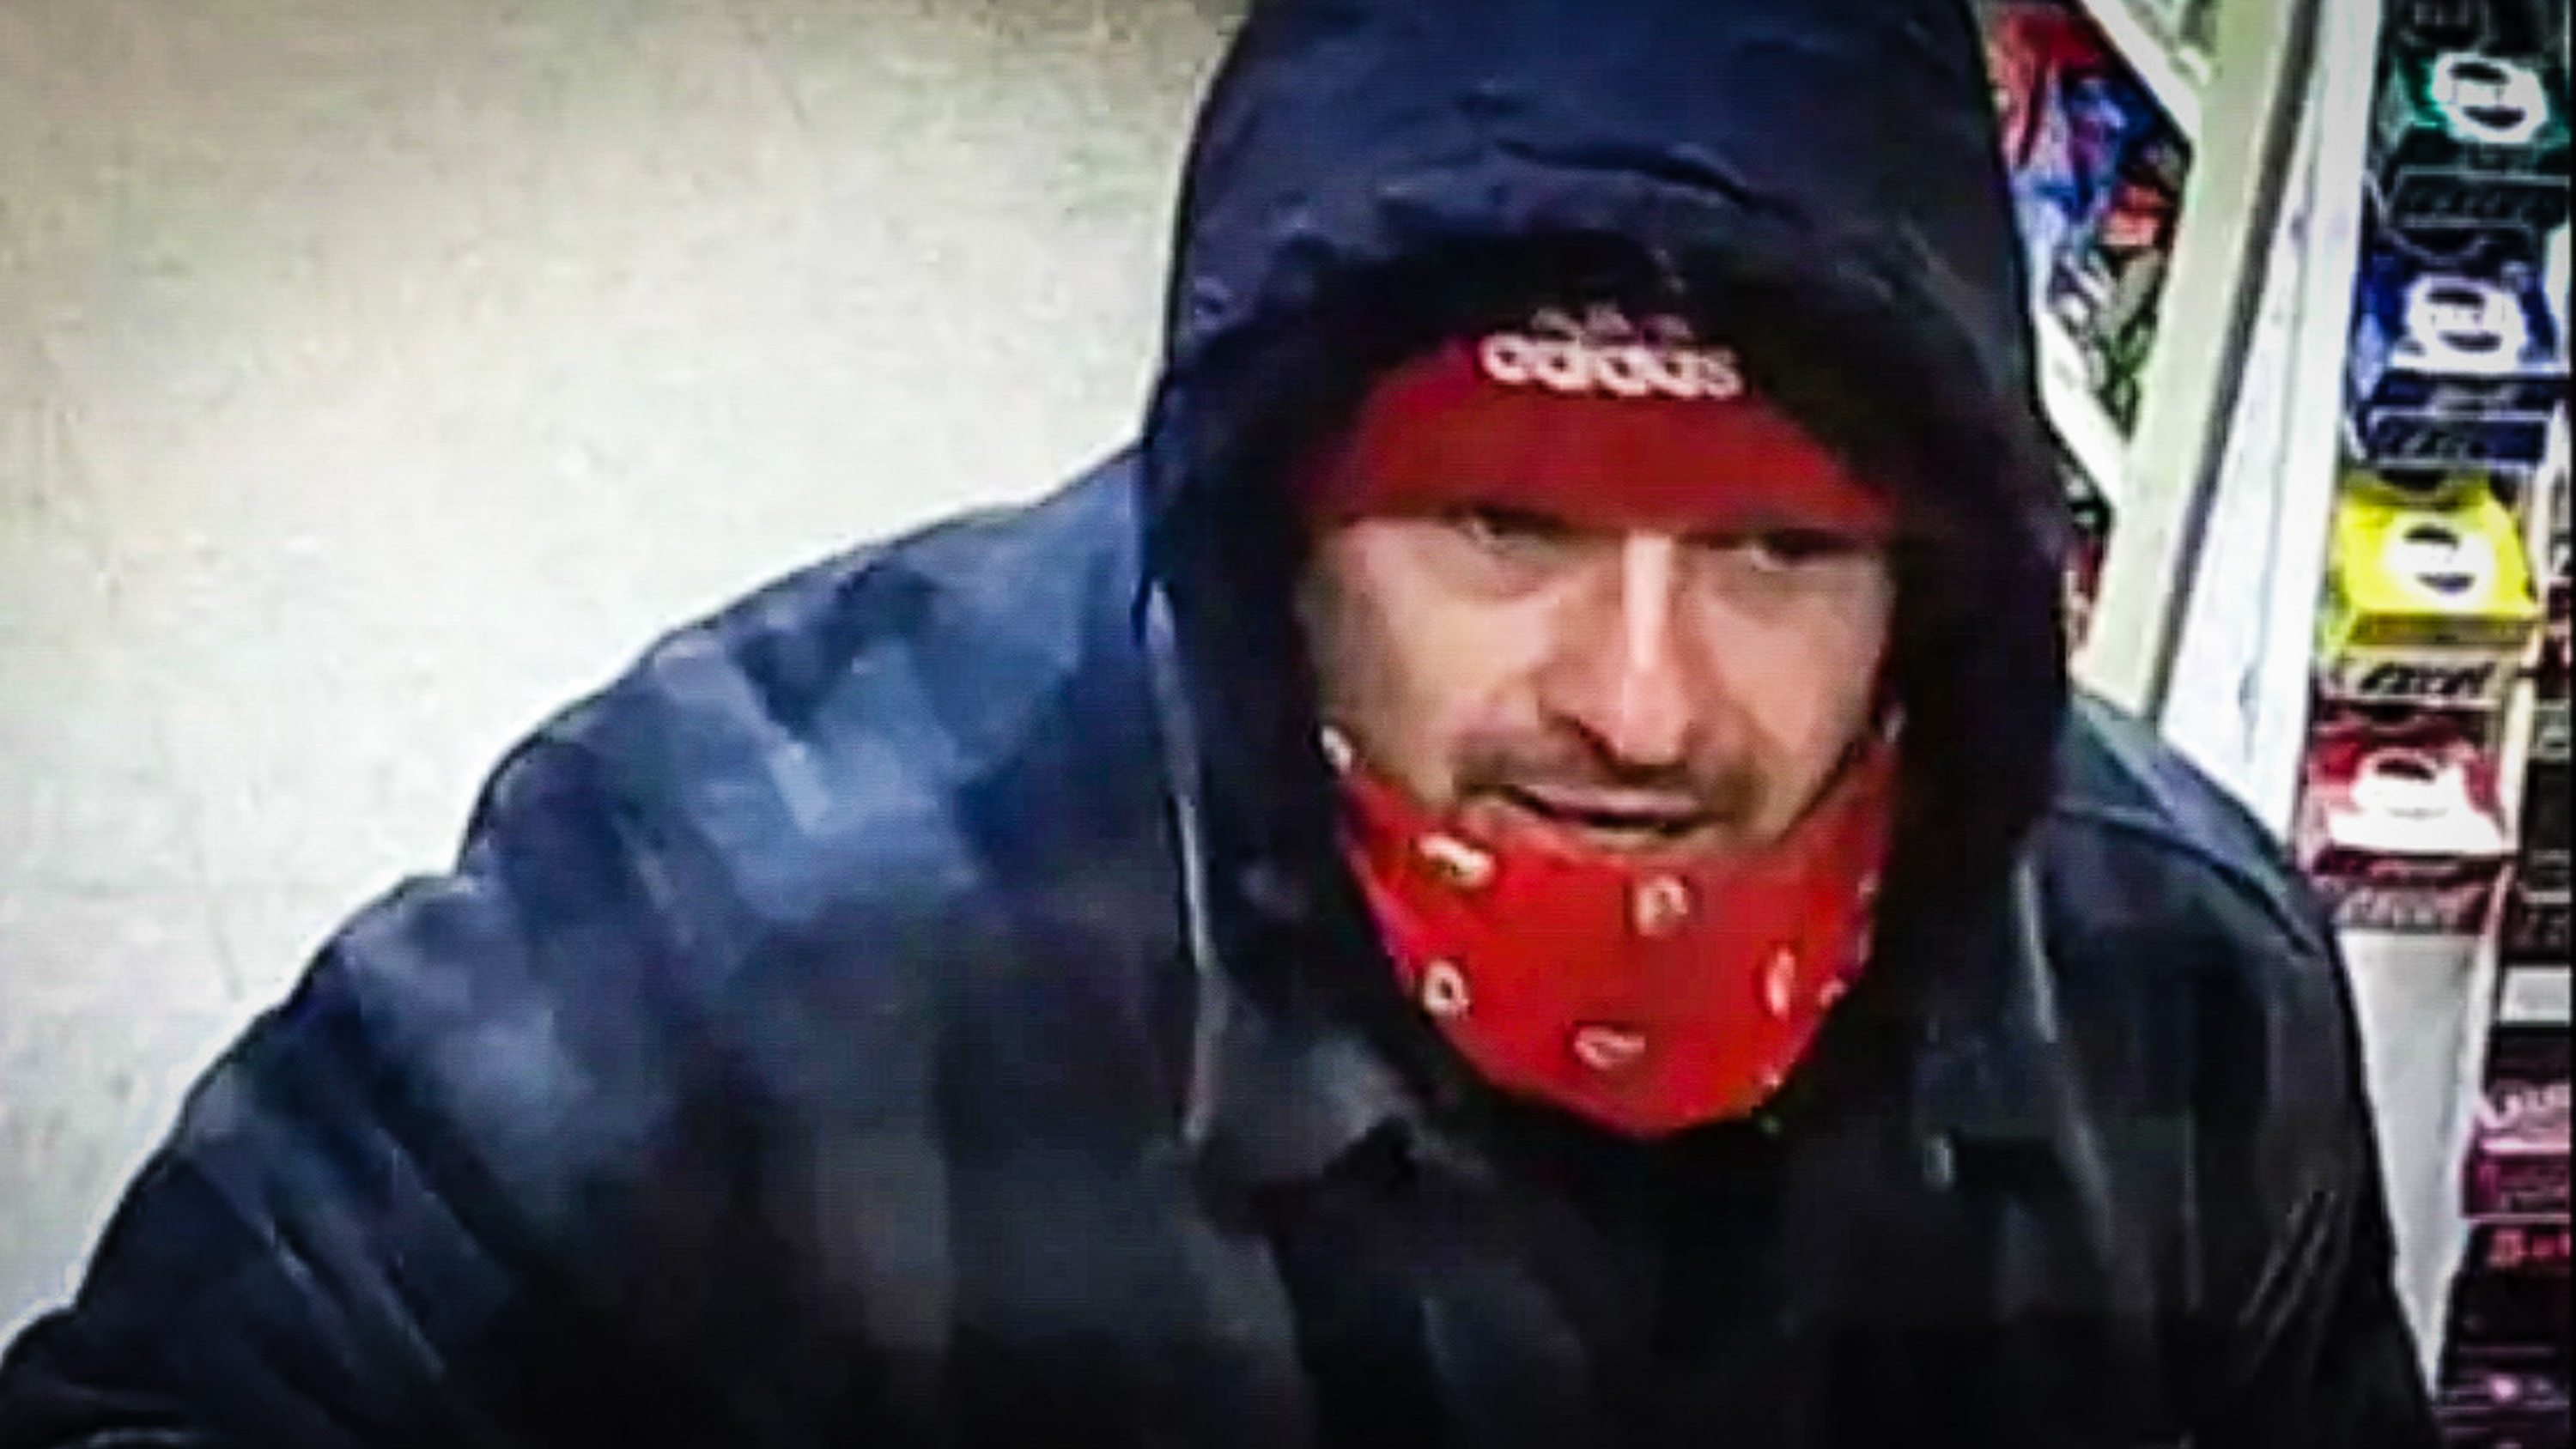 A suspect in a Reddi Mart robbery in January 2018 is shown in a still from security footage released by RCMP at the time